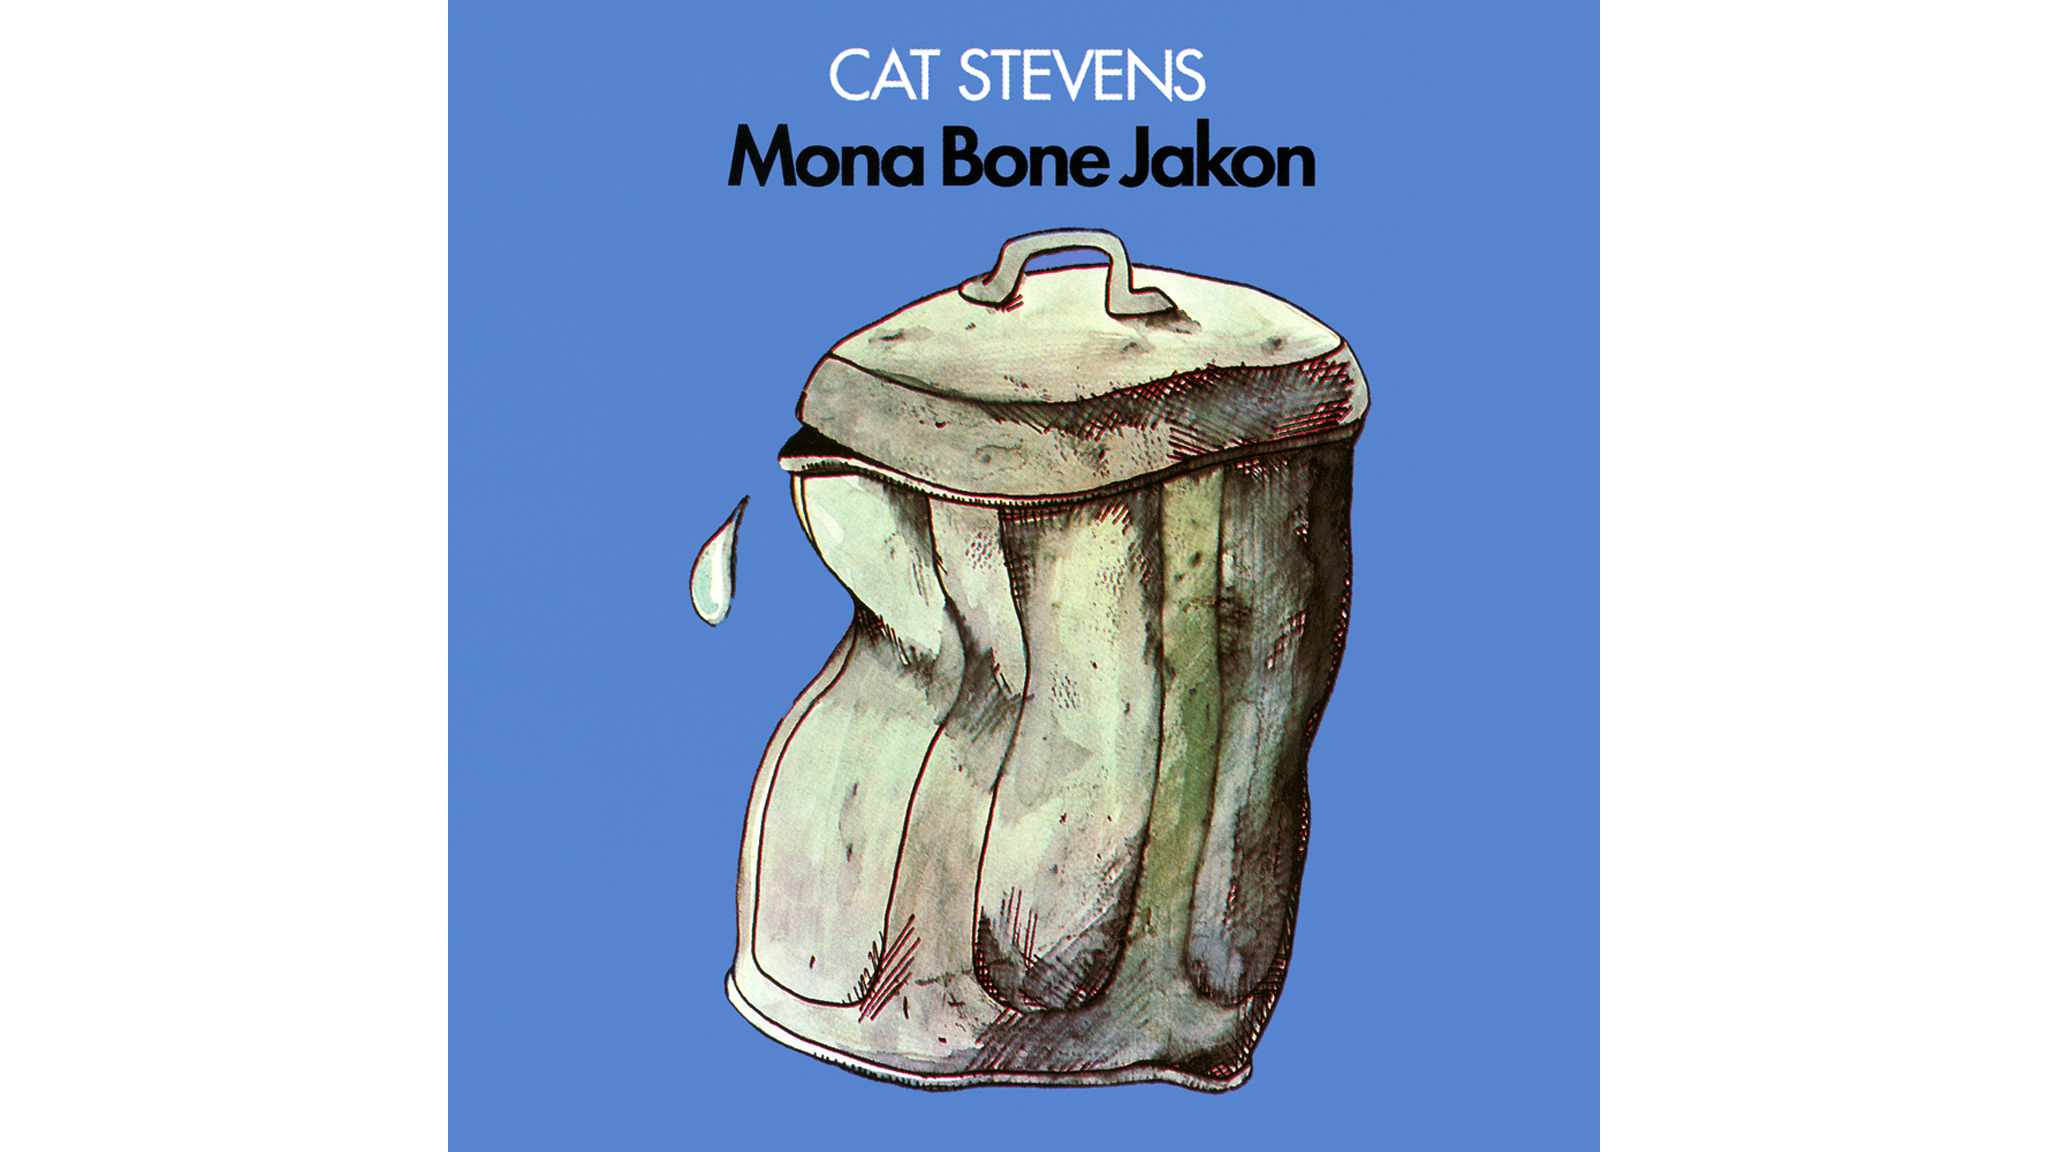 The 50 best sad songs: 'Trouble' – Cat Stevens